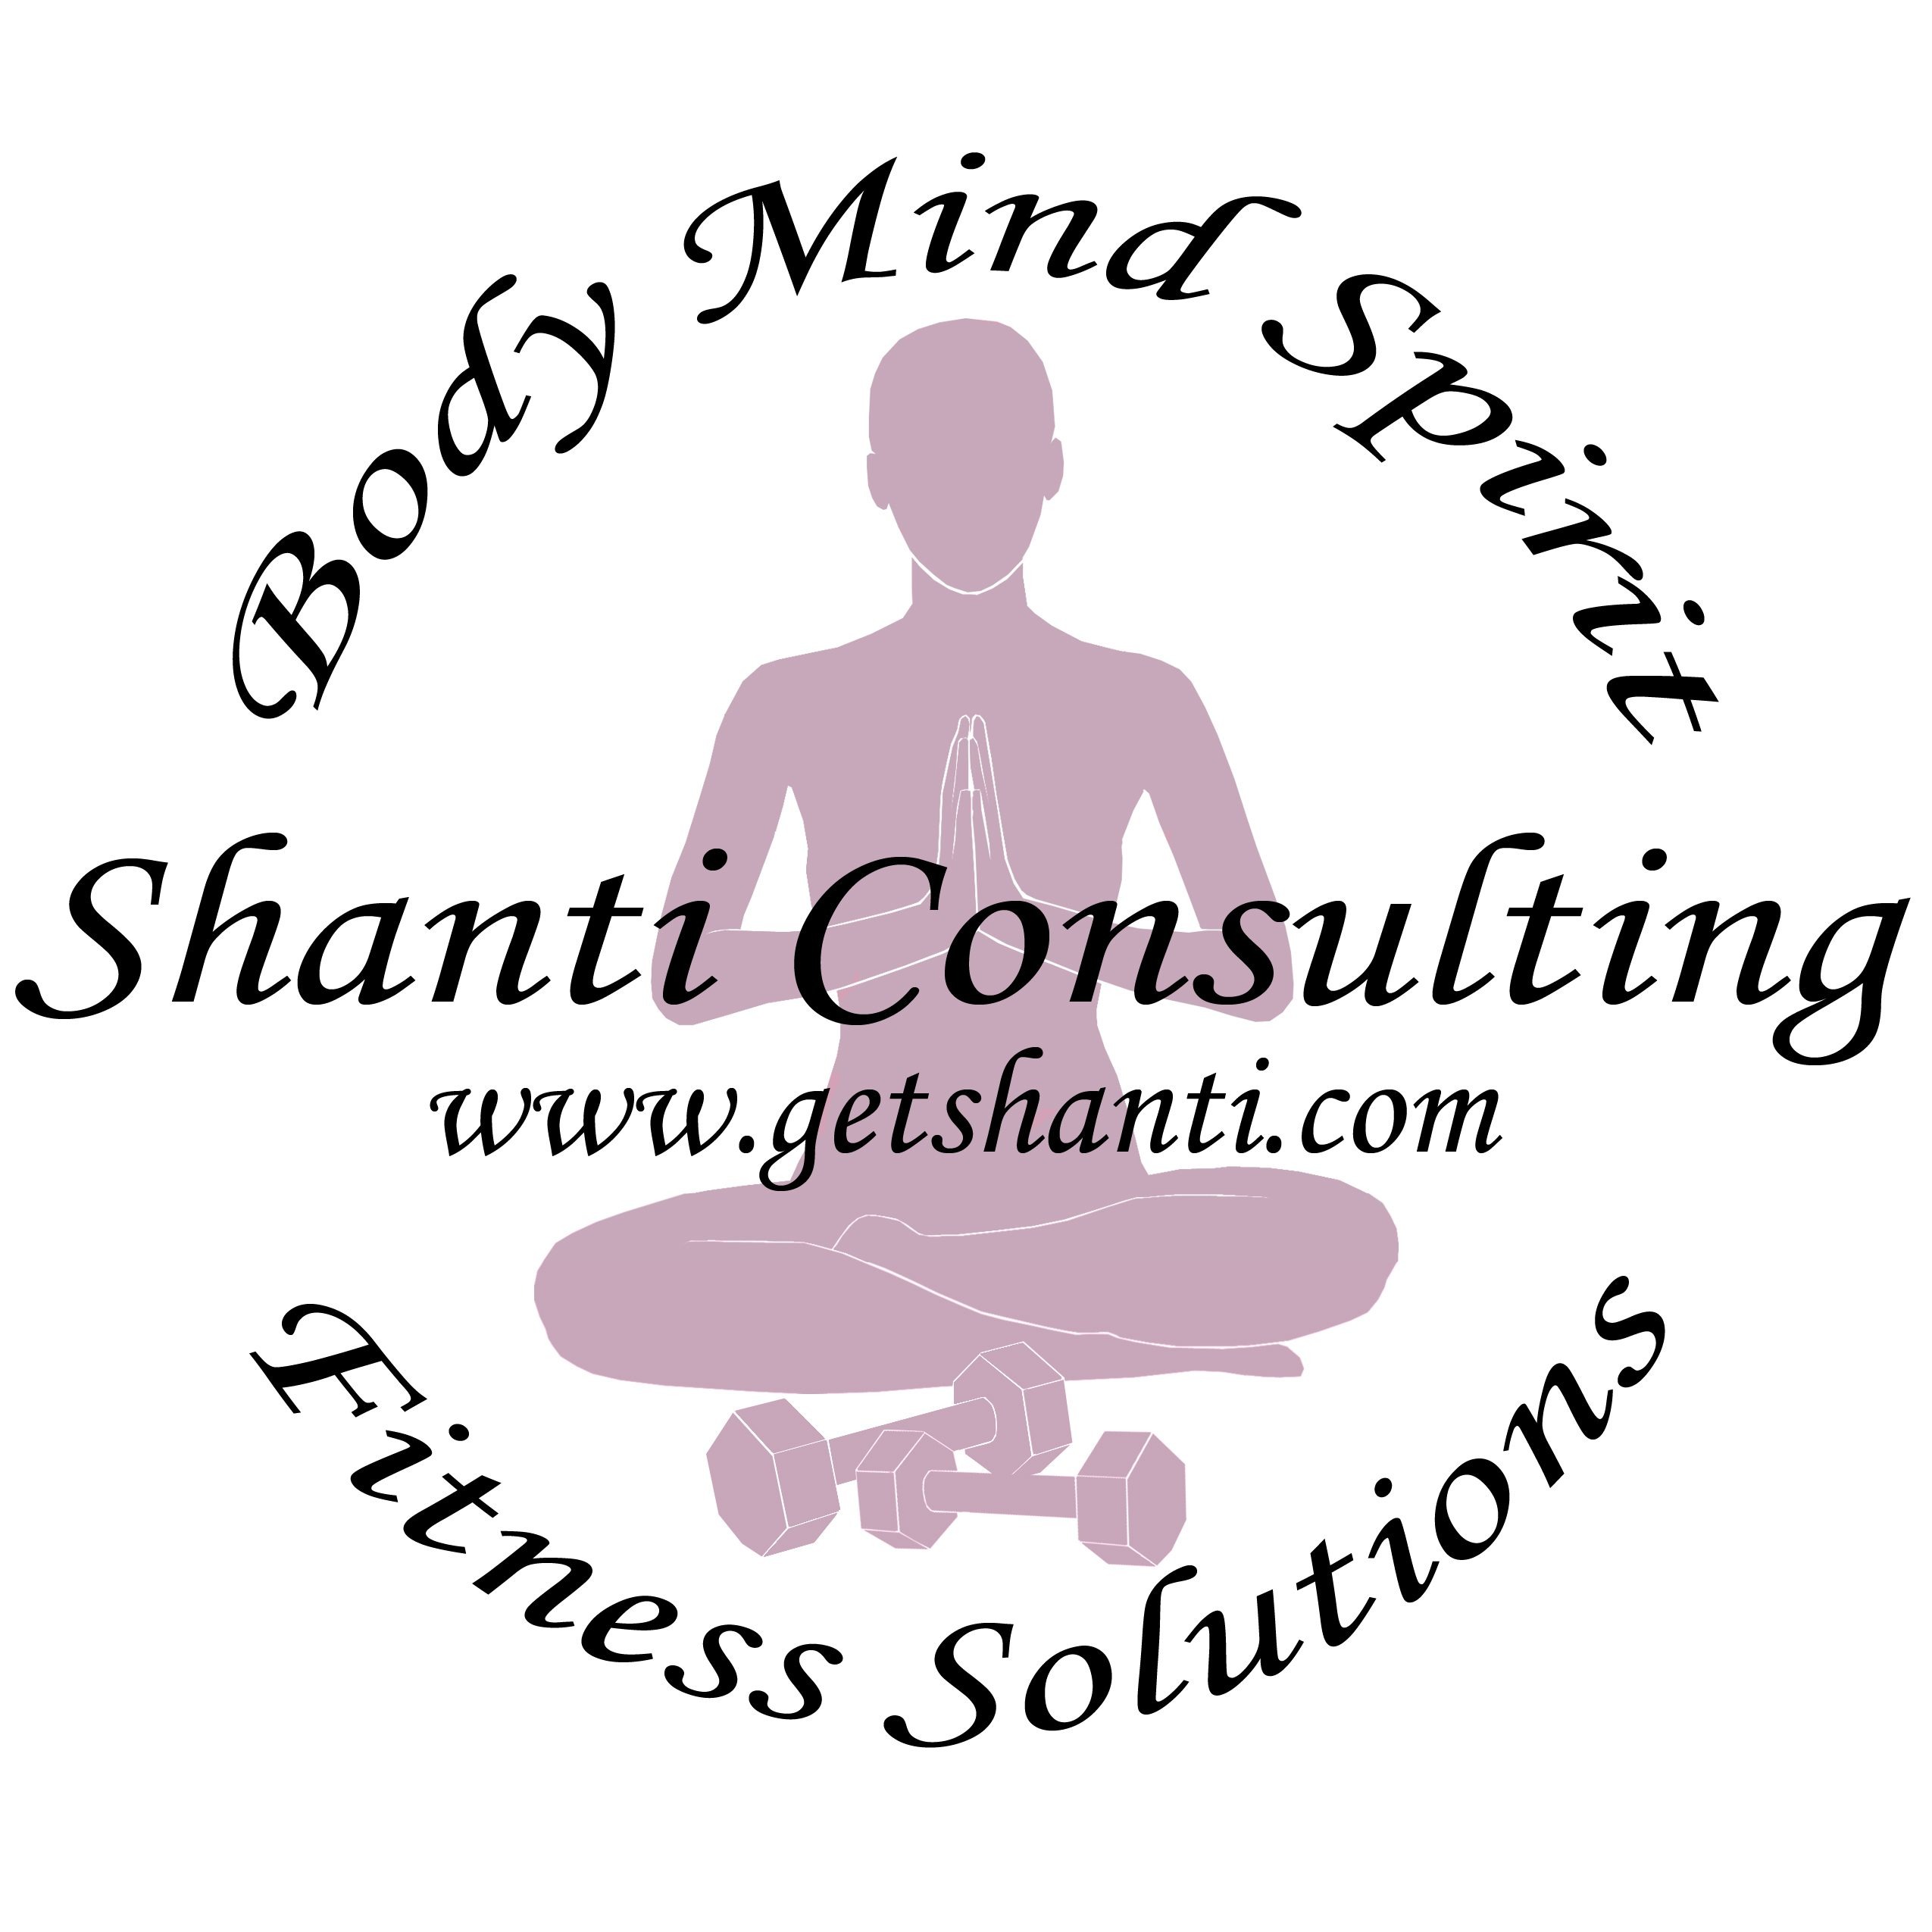 Online Training for Every Woman's Body, Mind, Spirit